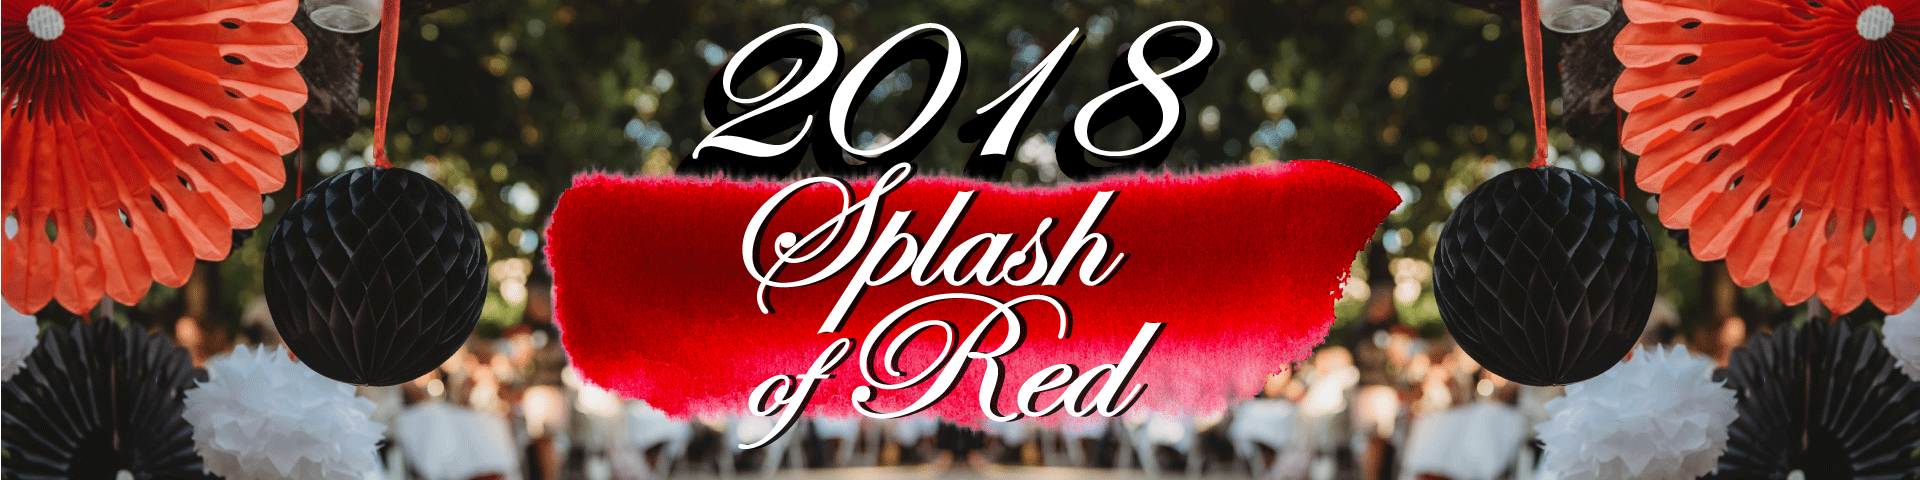 splash of red 2018 slider 411kb